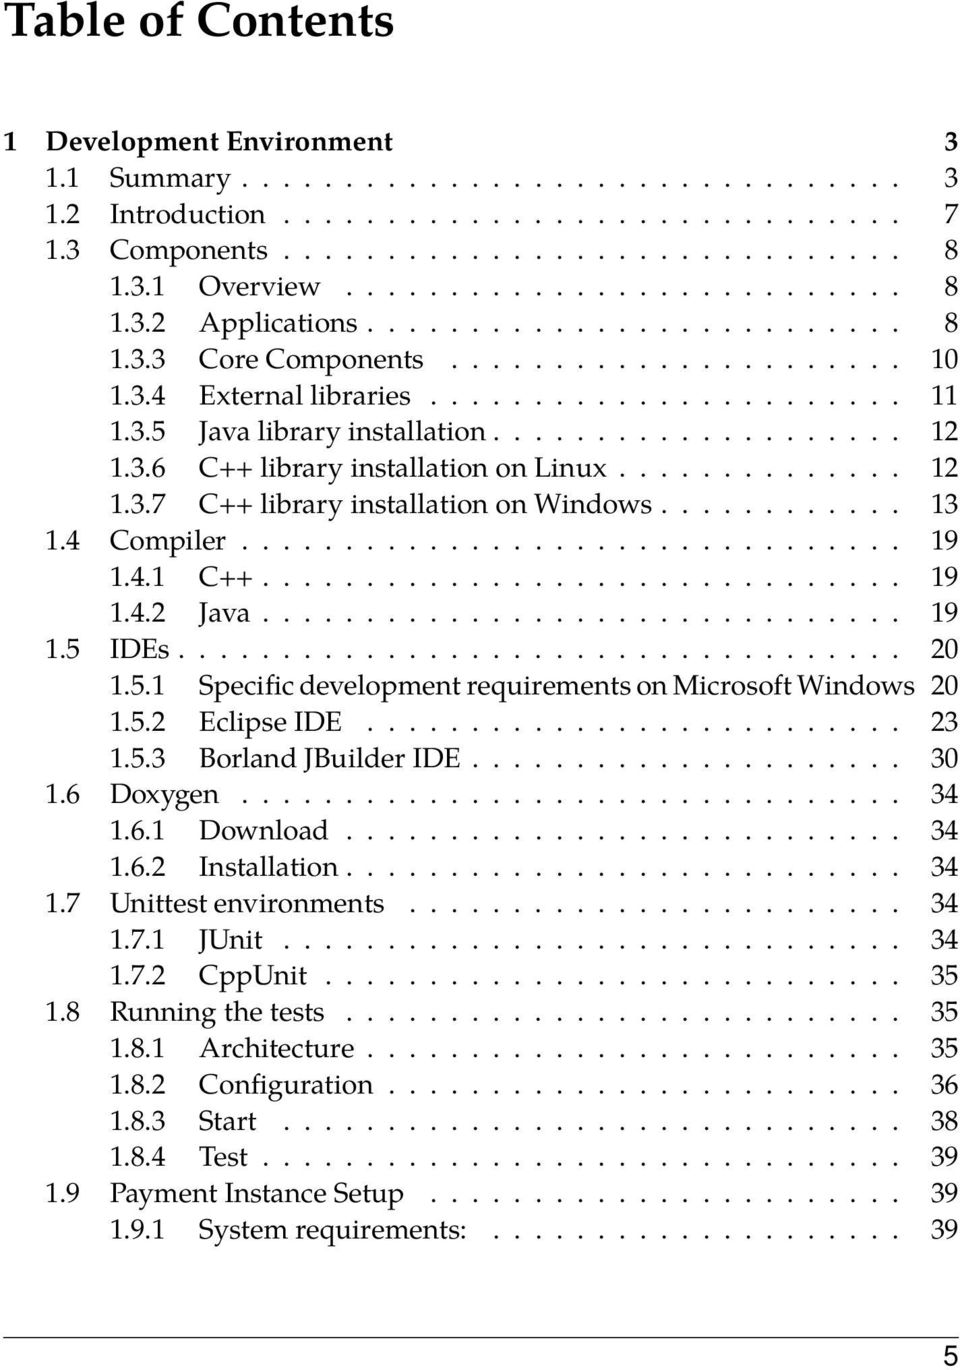 ................... 12 1.3.6 C++ library installation on Linux.............. 12 1.3.7 C++ library installation on Windows............ 13 1.4 Compiler................................ 19 1.4.1 C++.